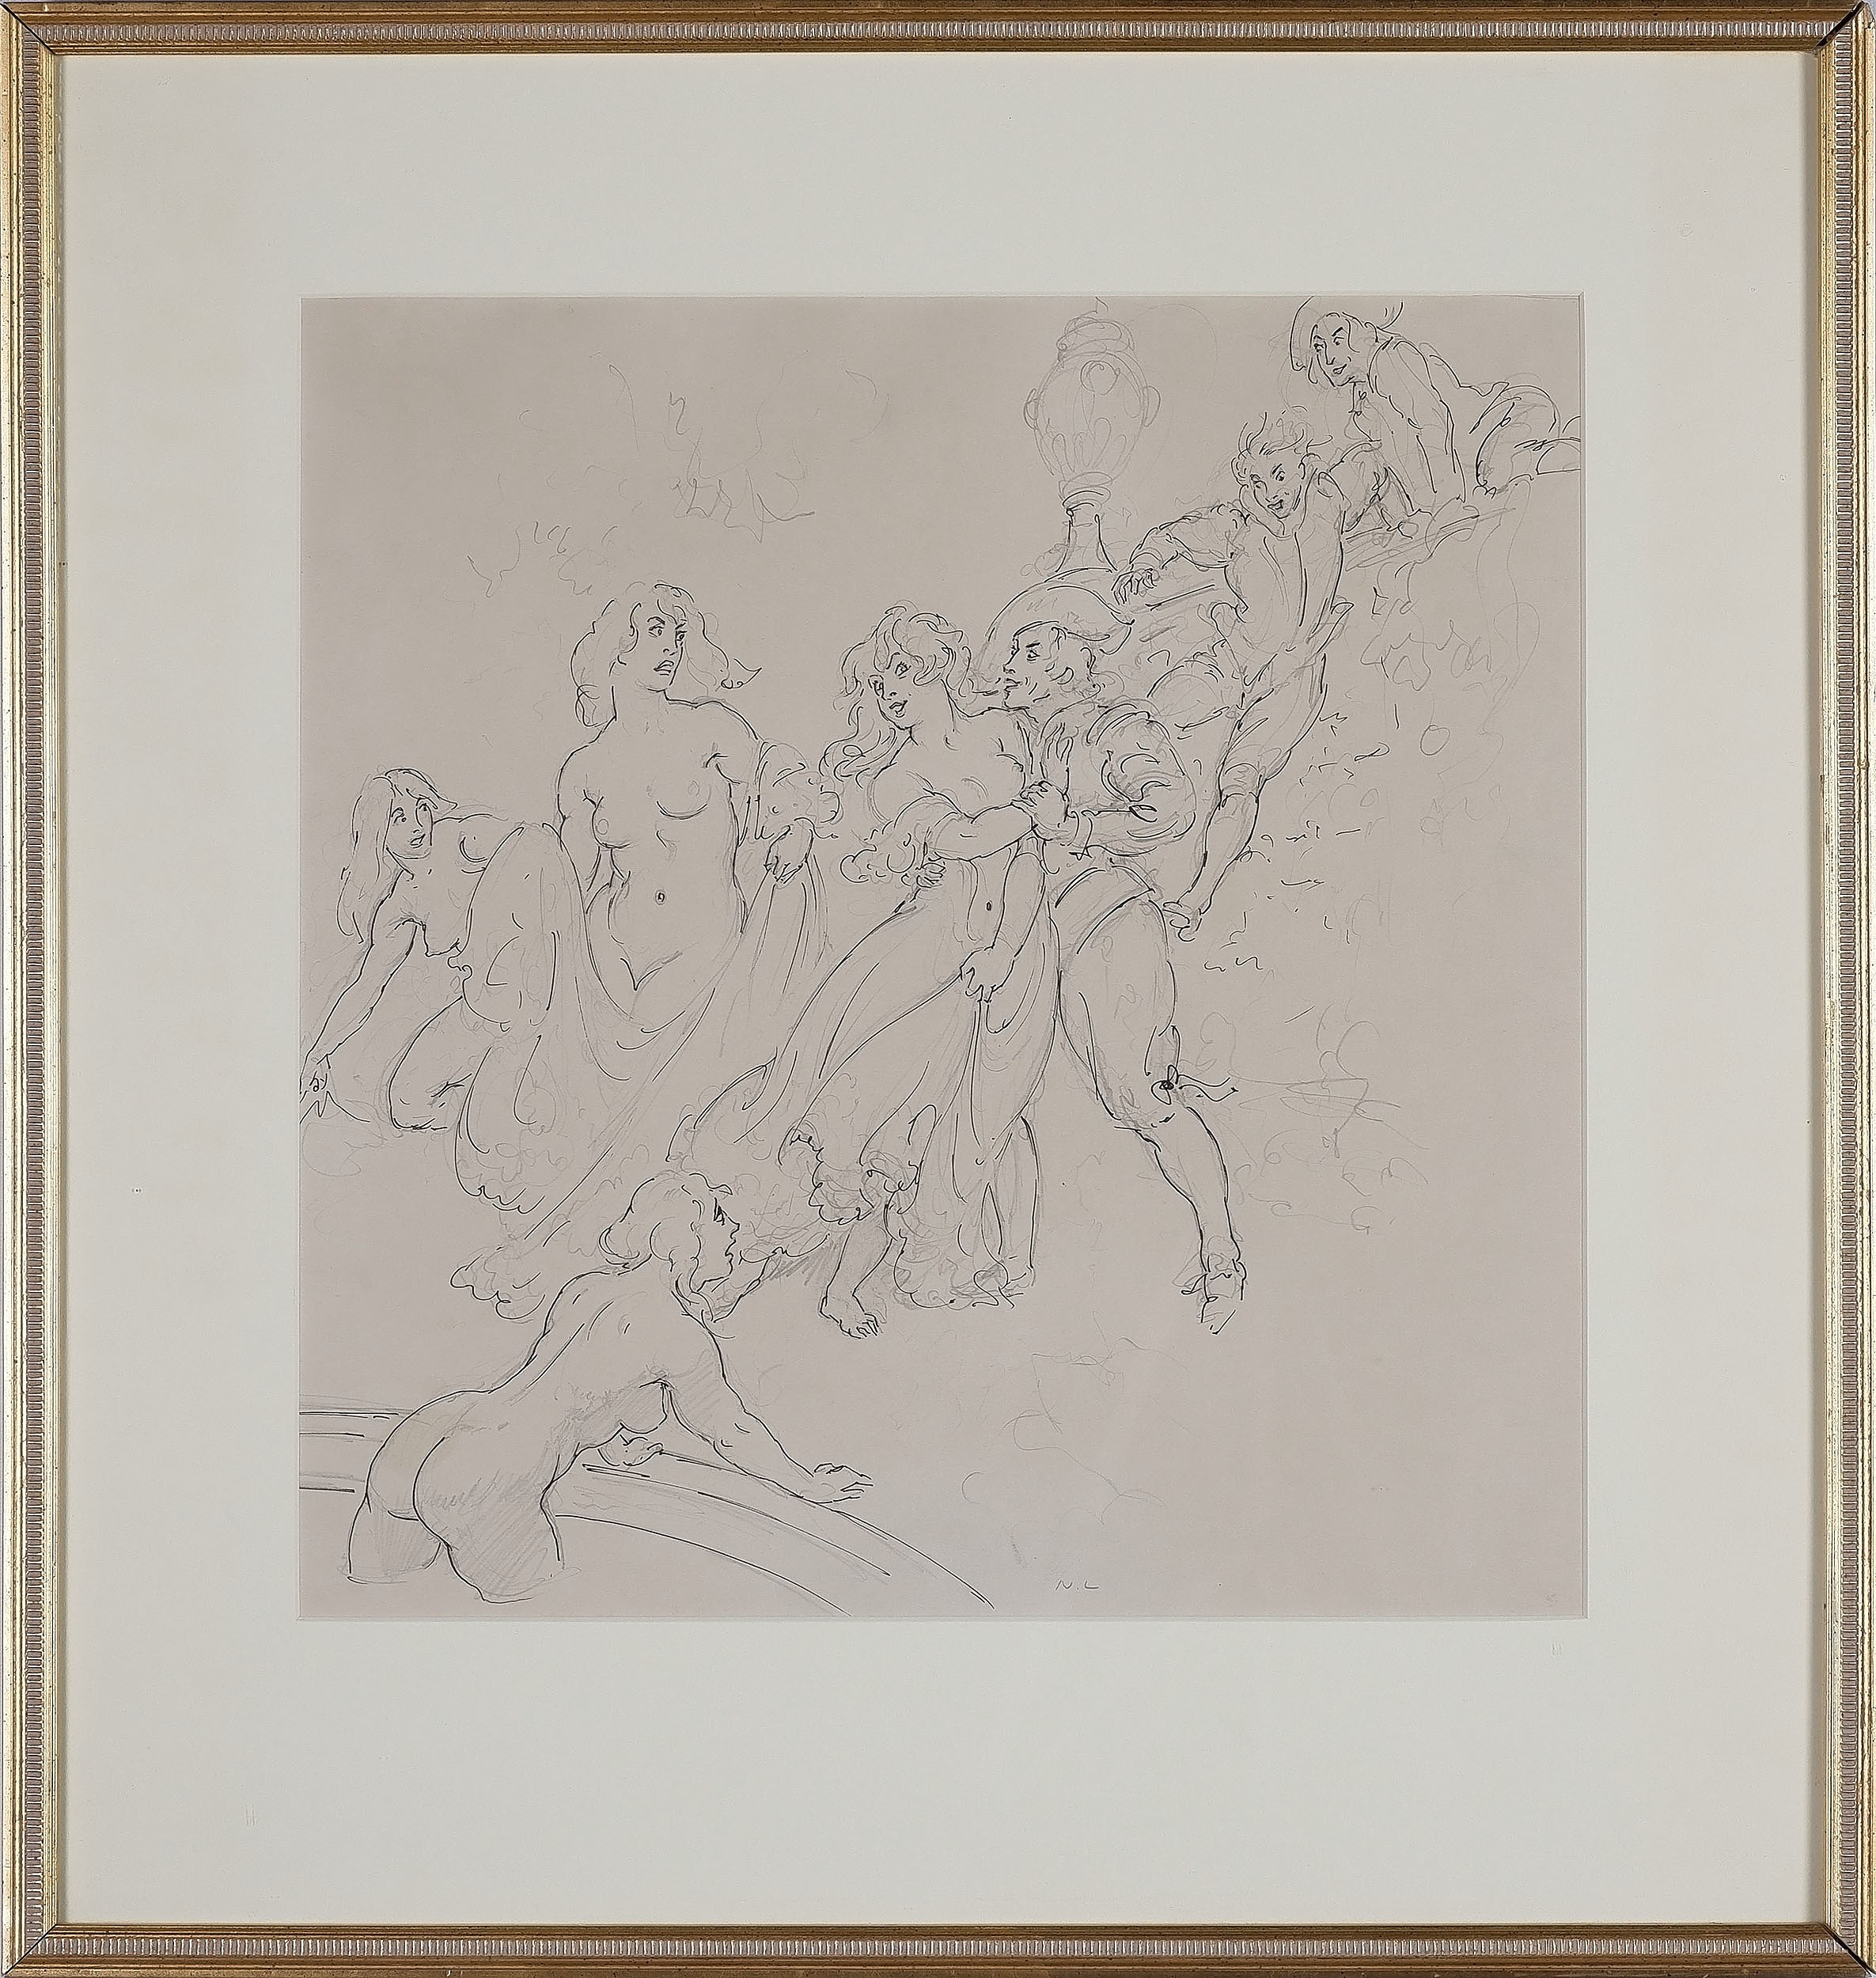 'Norman Lindsay (1879-1969) The Intruders Pen and Pencil on Paper Circa 1932'